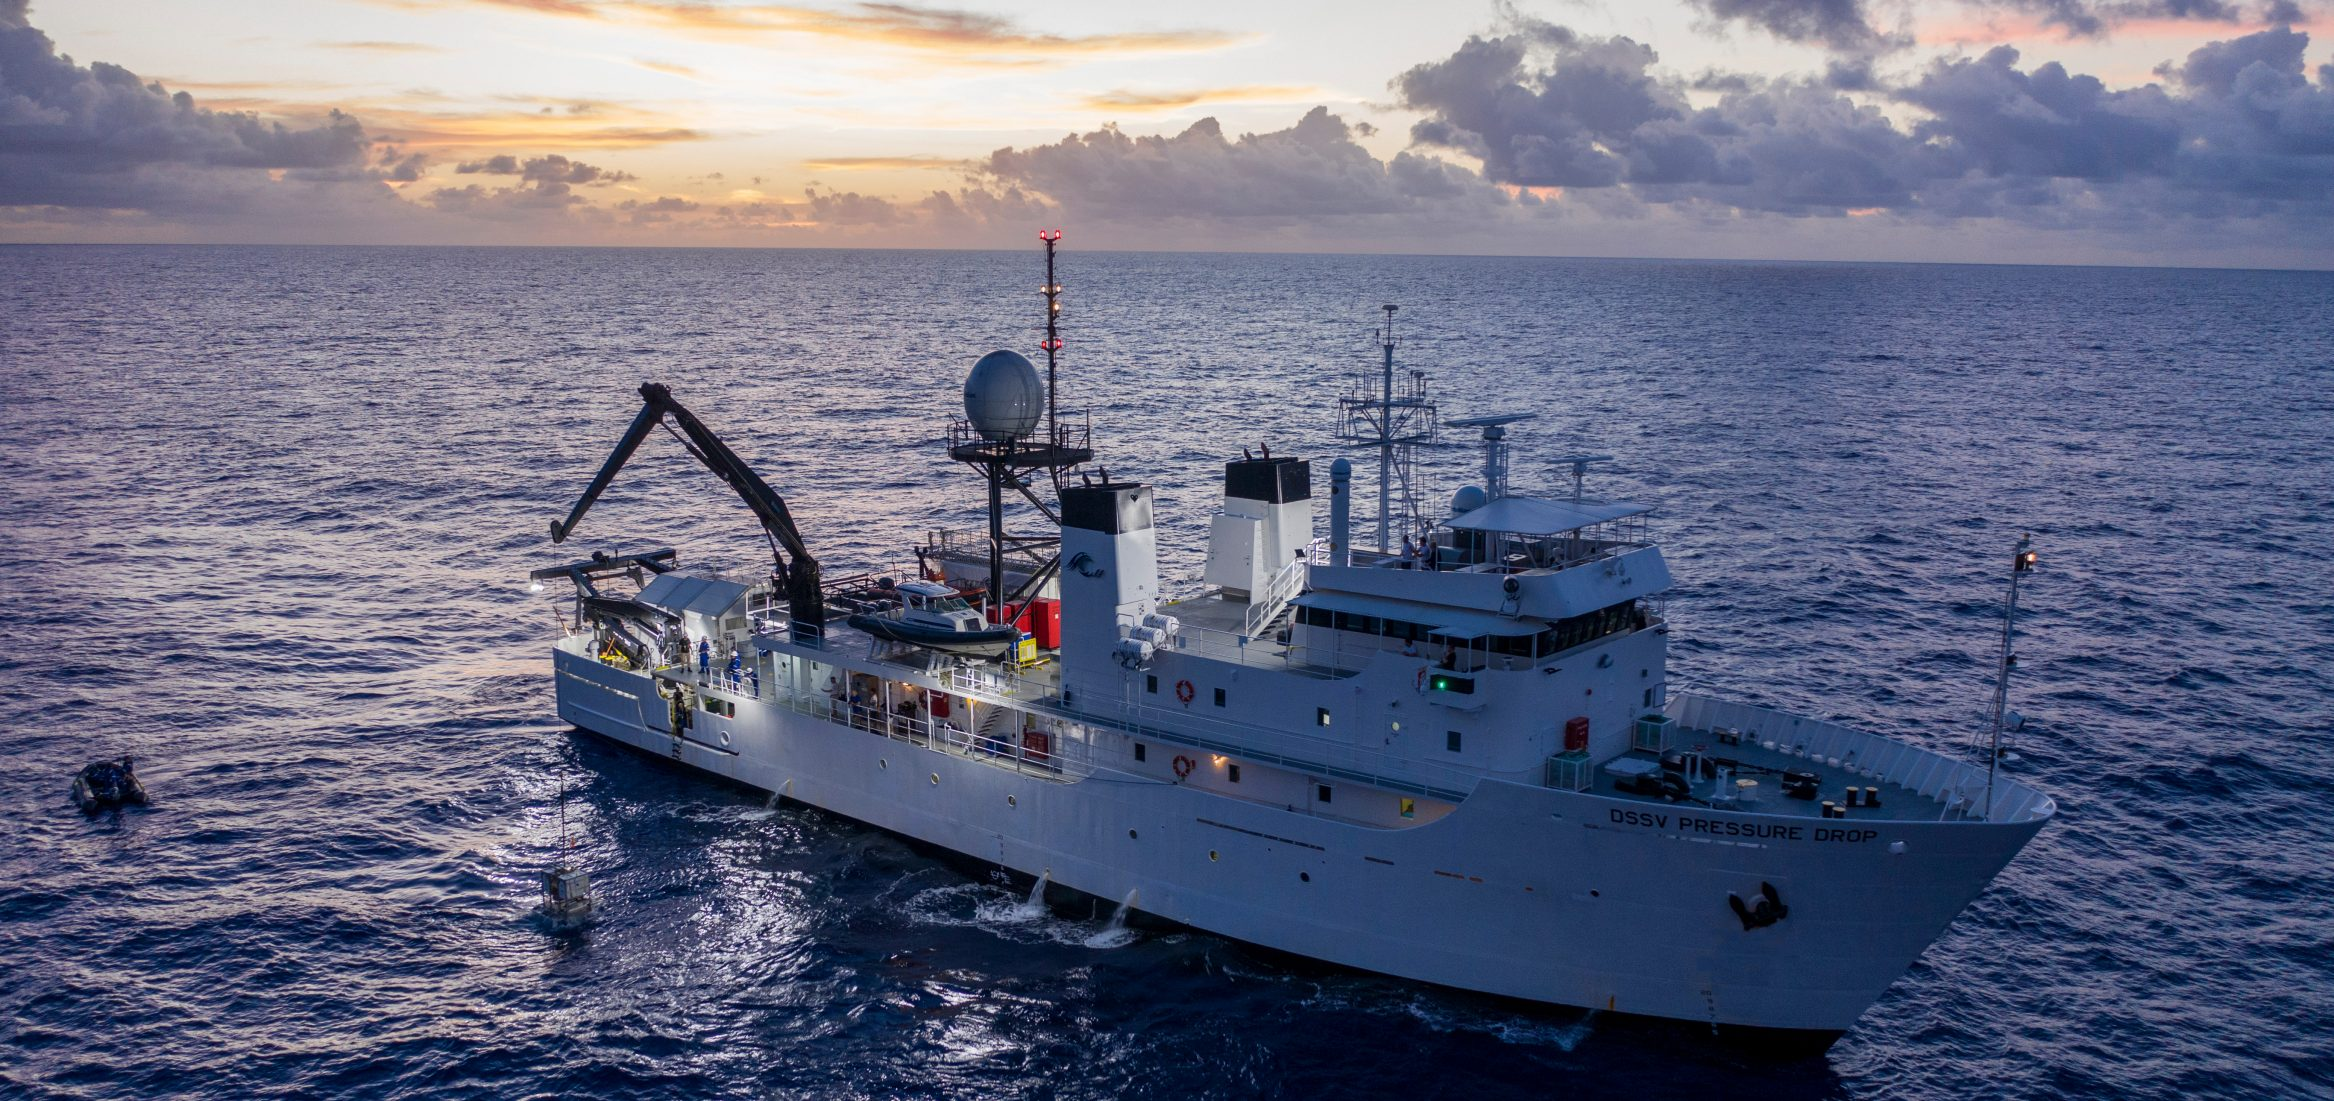 deep-sea-expedition-DSSV-Pressure-Drop-Mariana-Trench